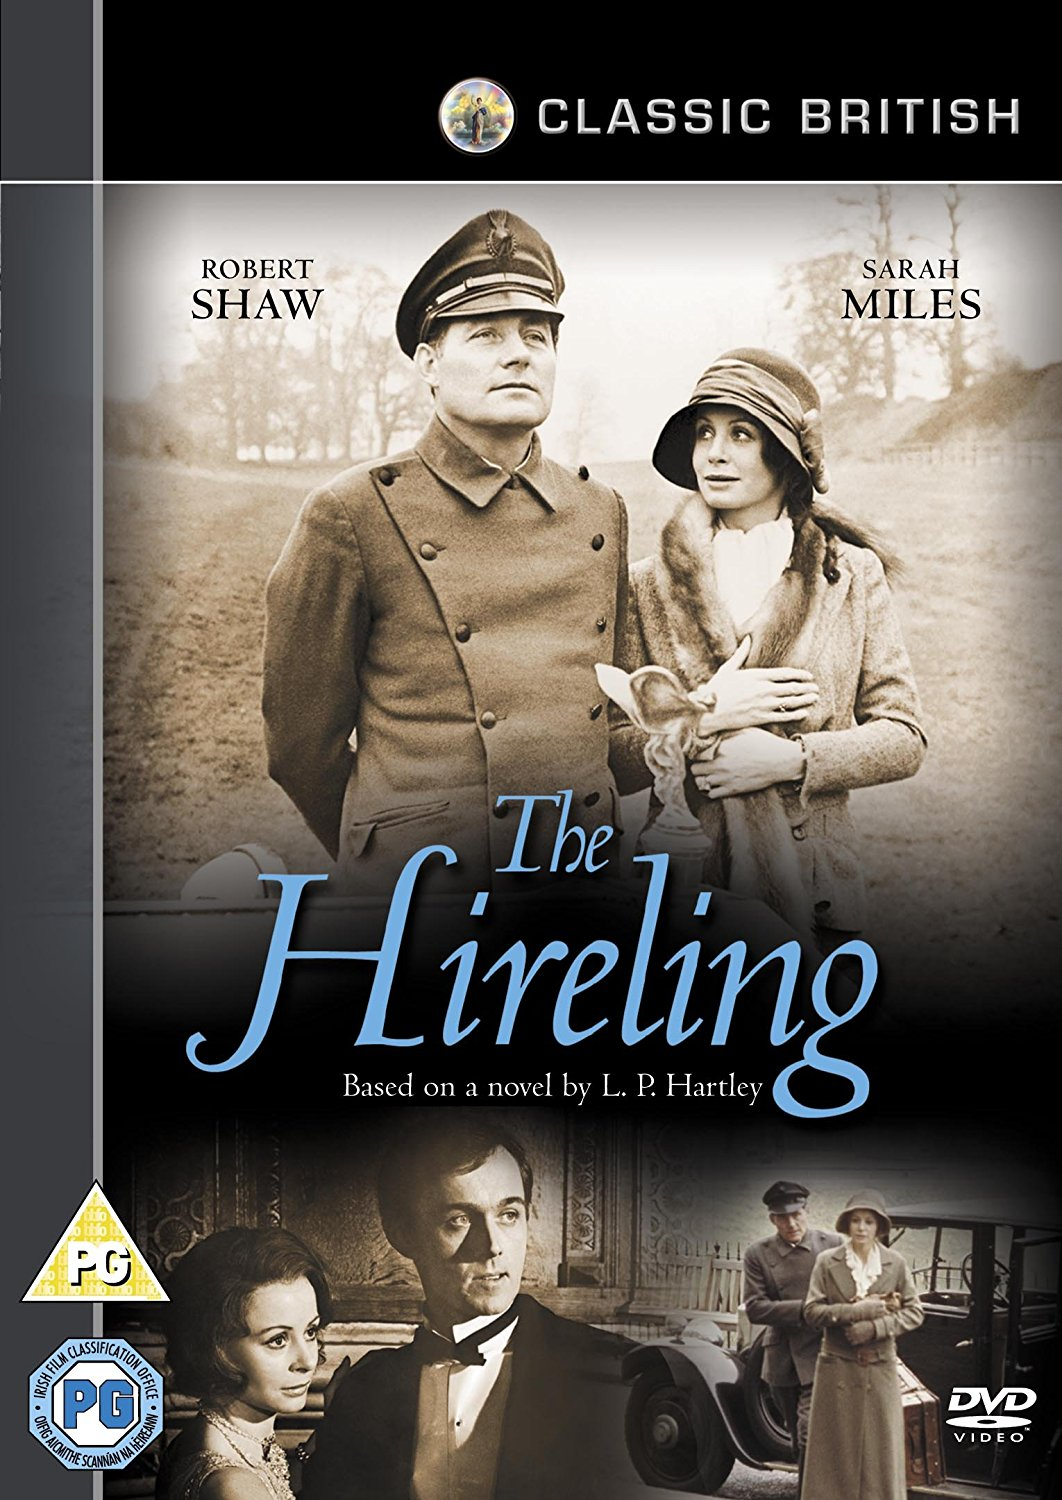 The Hireling (UK, 1973)